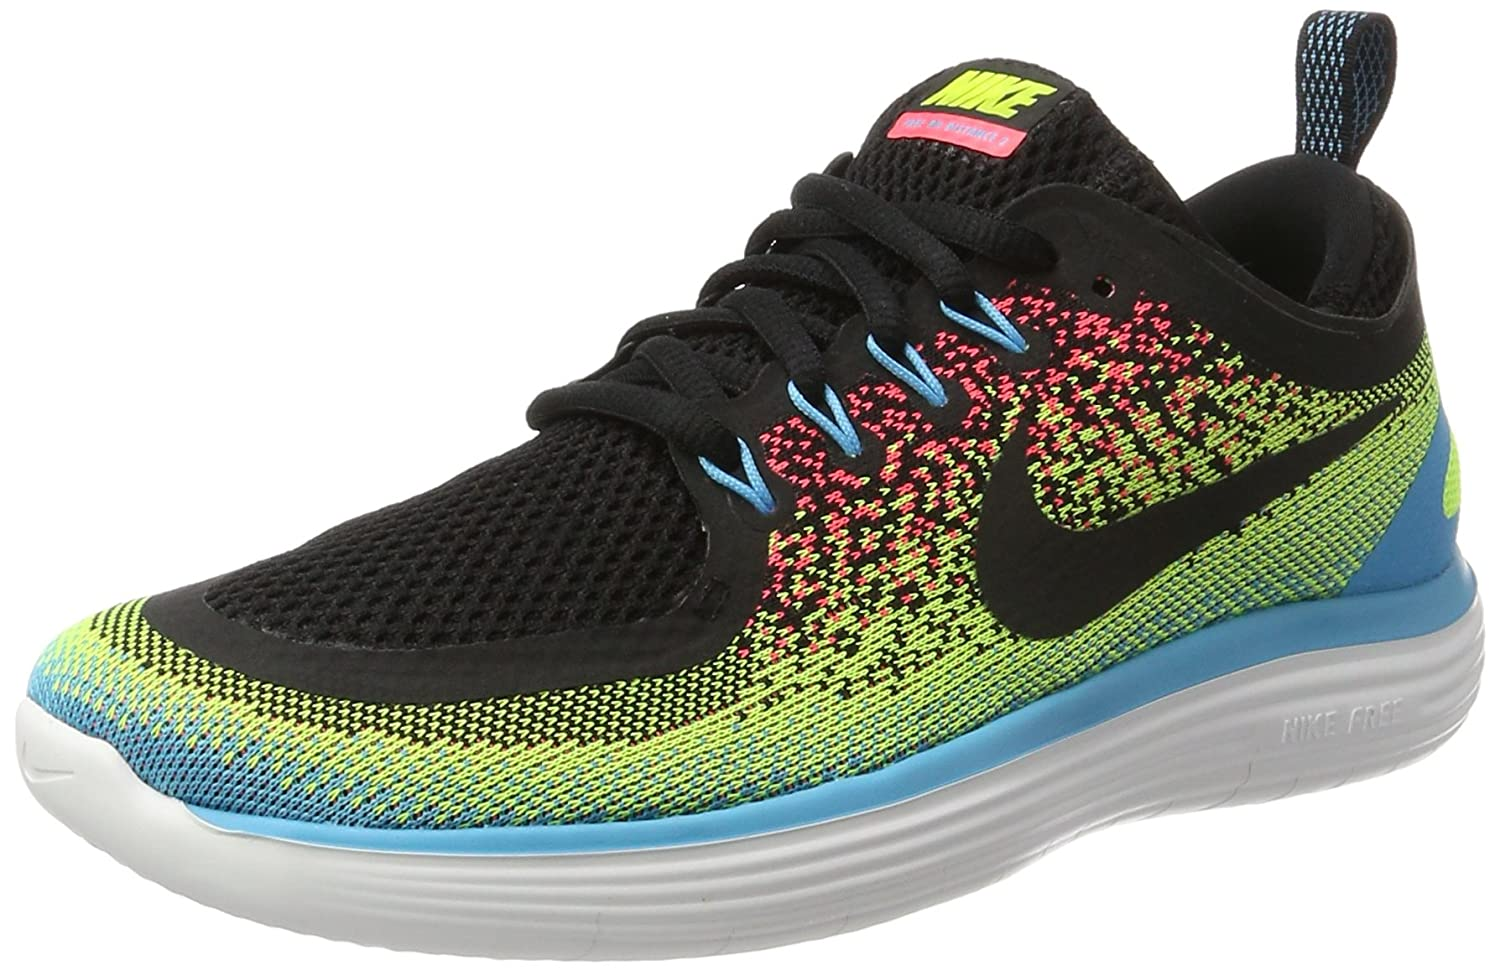 info for 4be2b 3faf9 Nike Men s Free RN Distance 2 Running Shoes  Buy Online at Low Prices in  India - Amazon.in